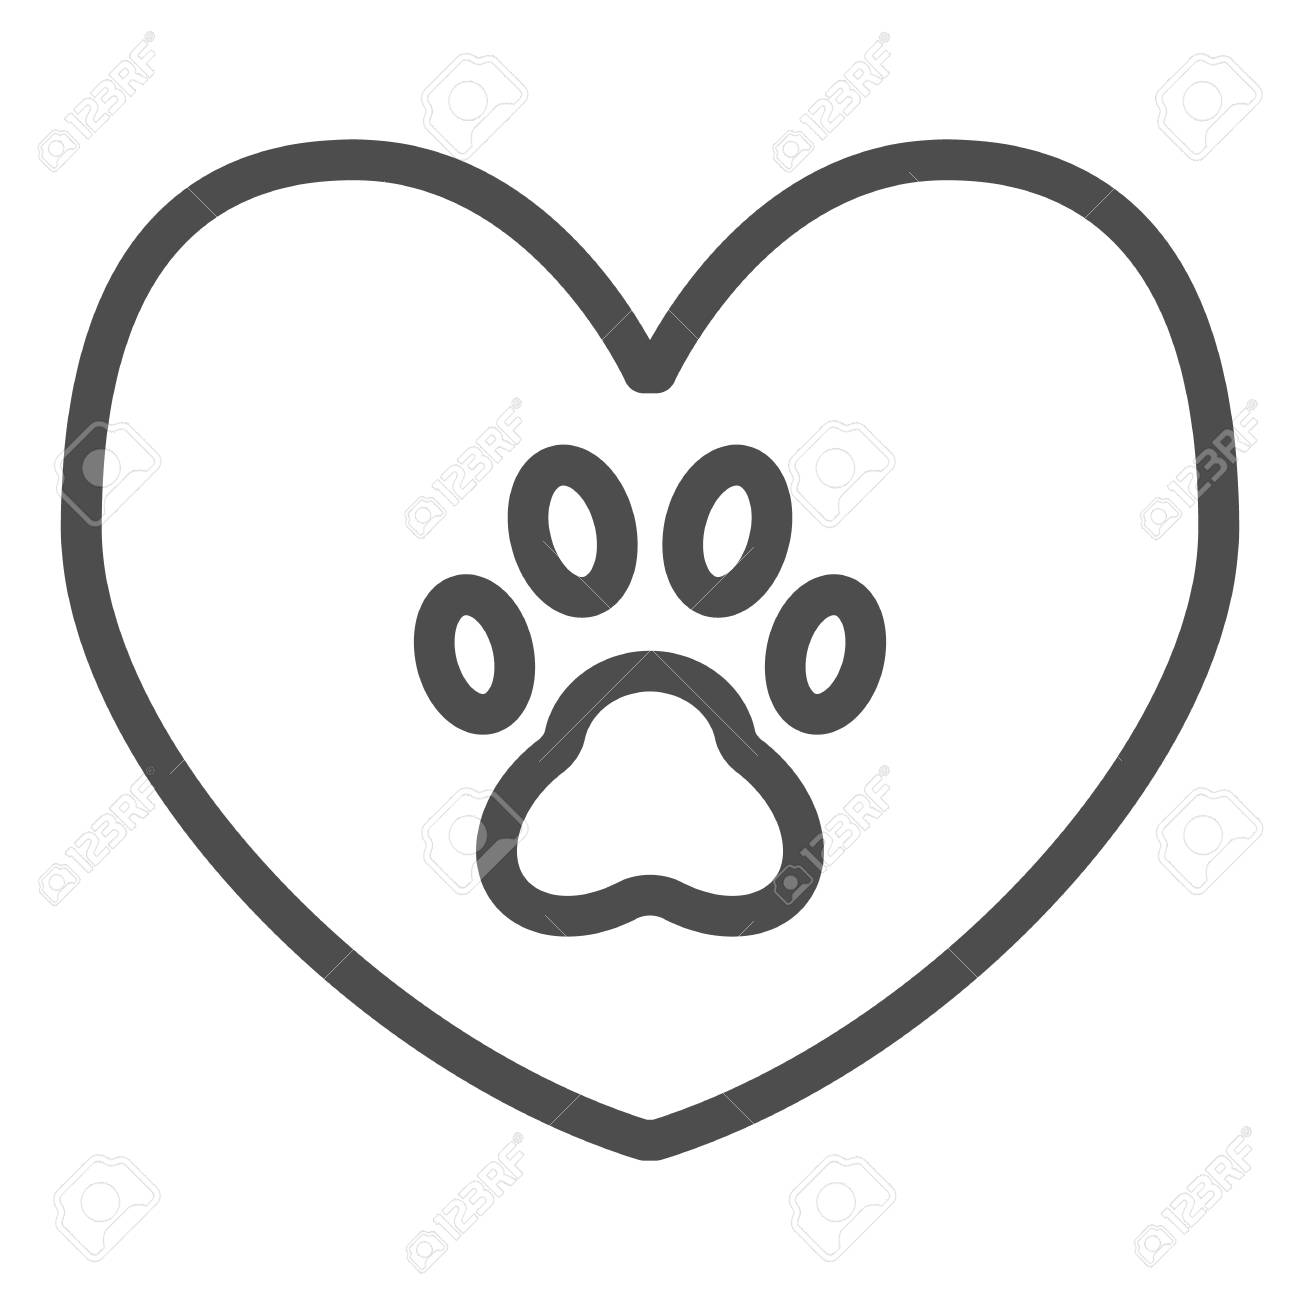 Heart with dog paw line icon  Heart and paw print vector illustration